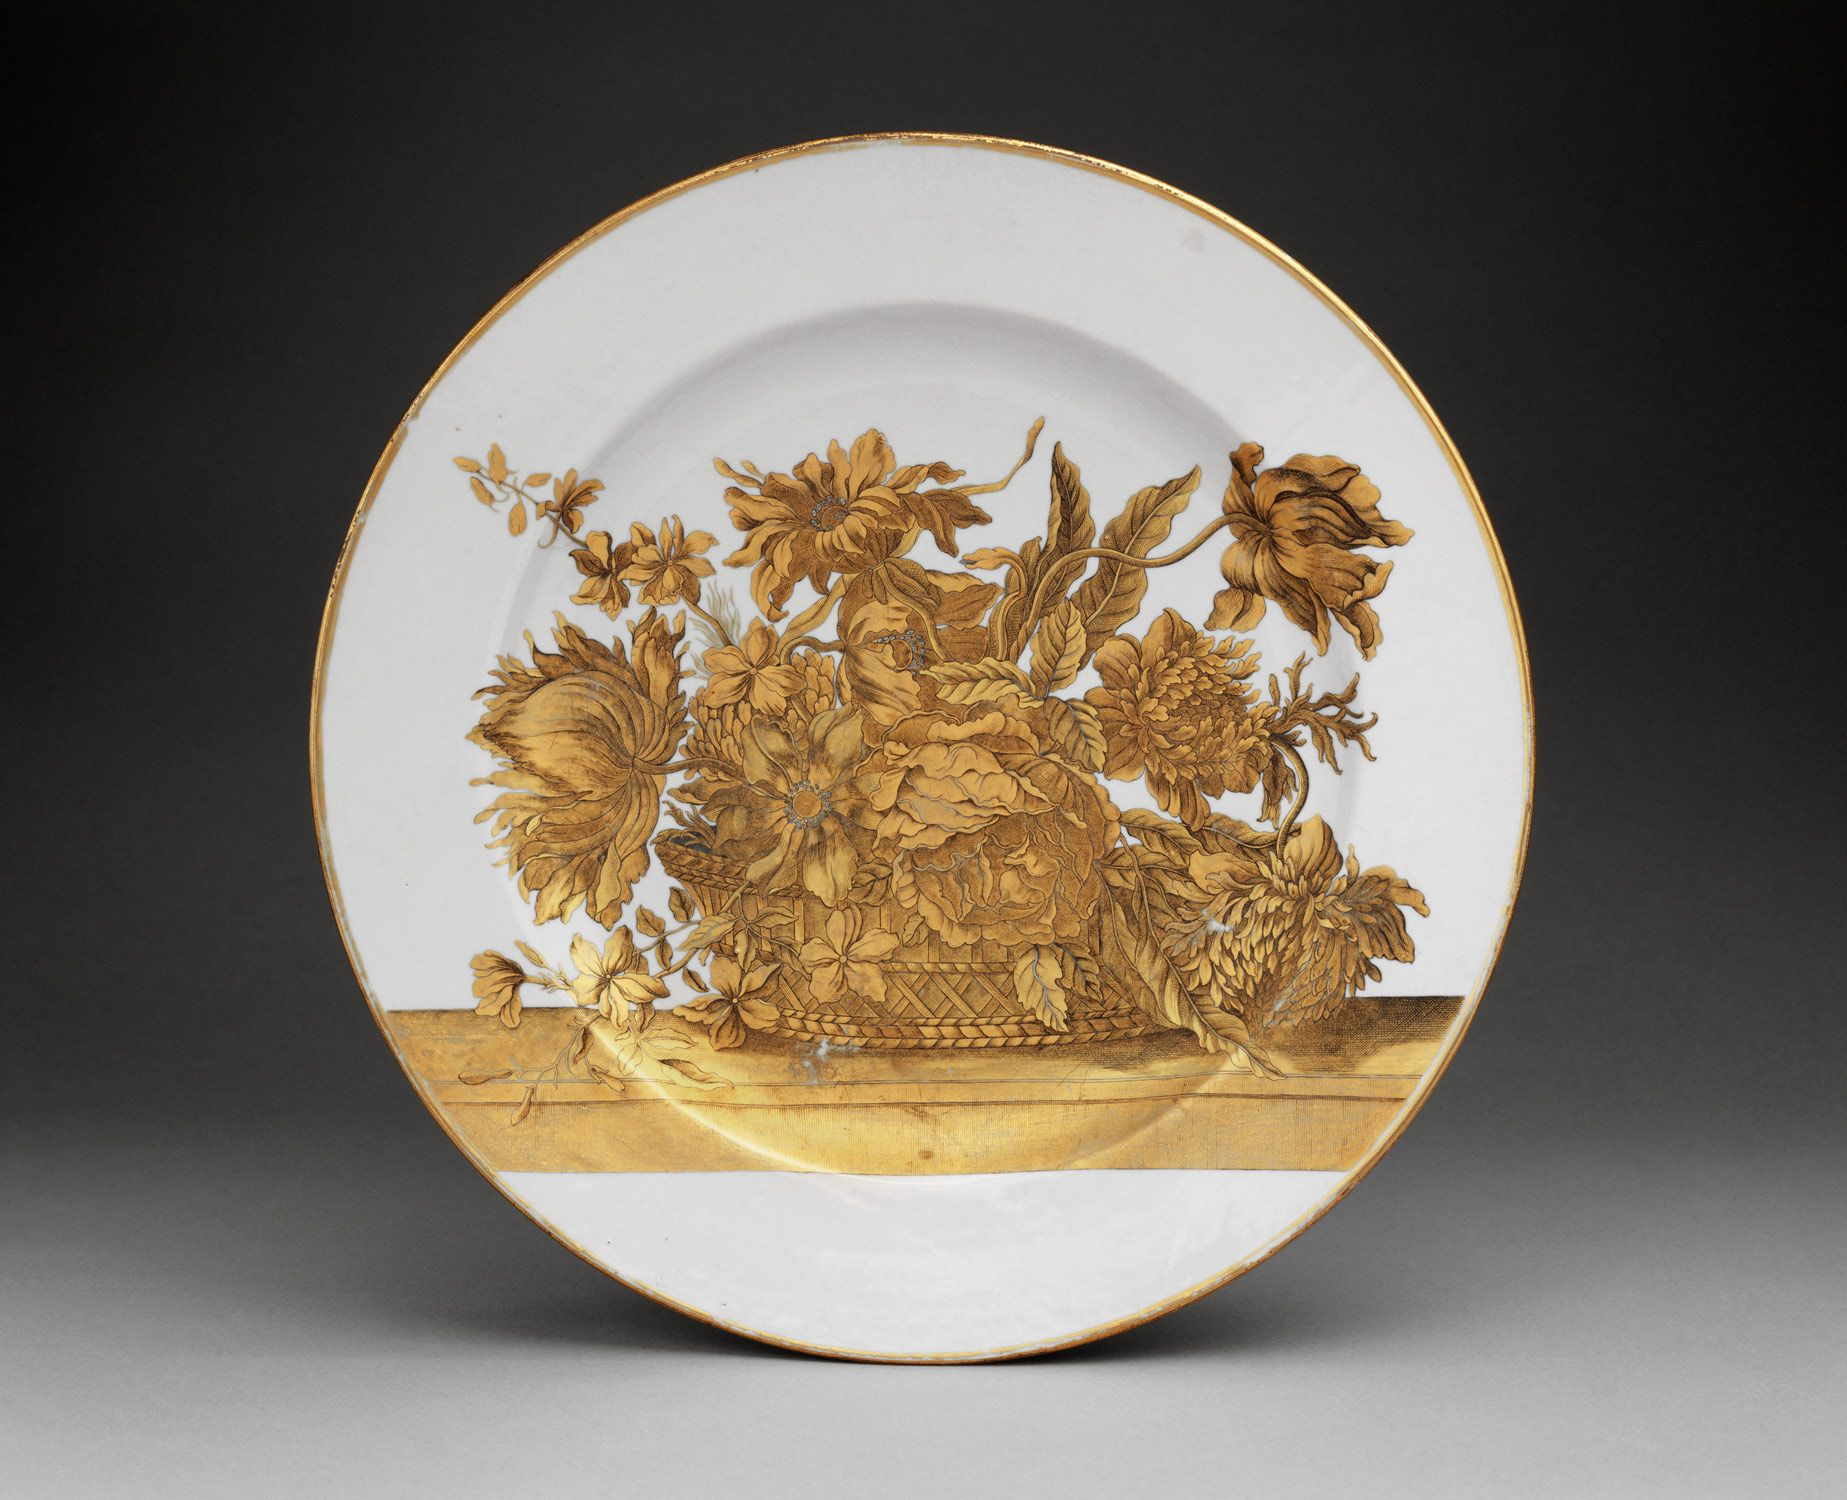 East and West: Chinese Export Porcelain  Essay  The Metropolitan